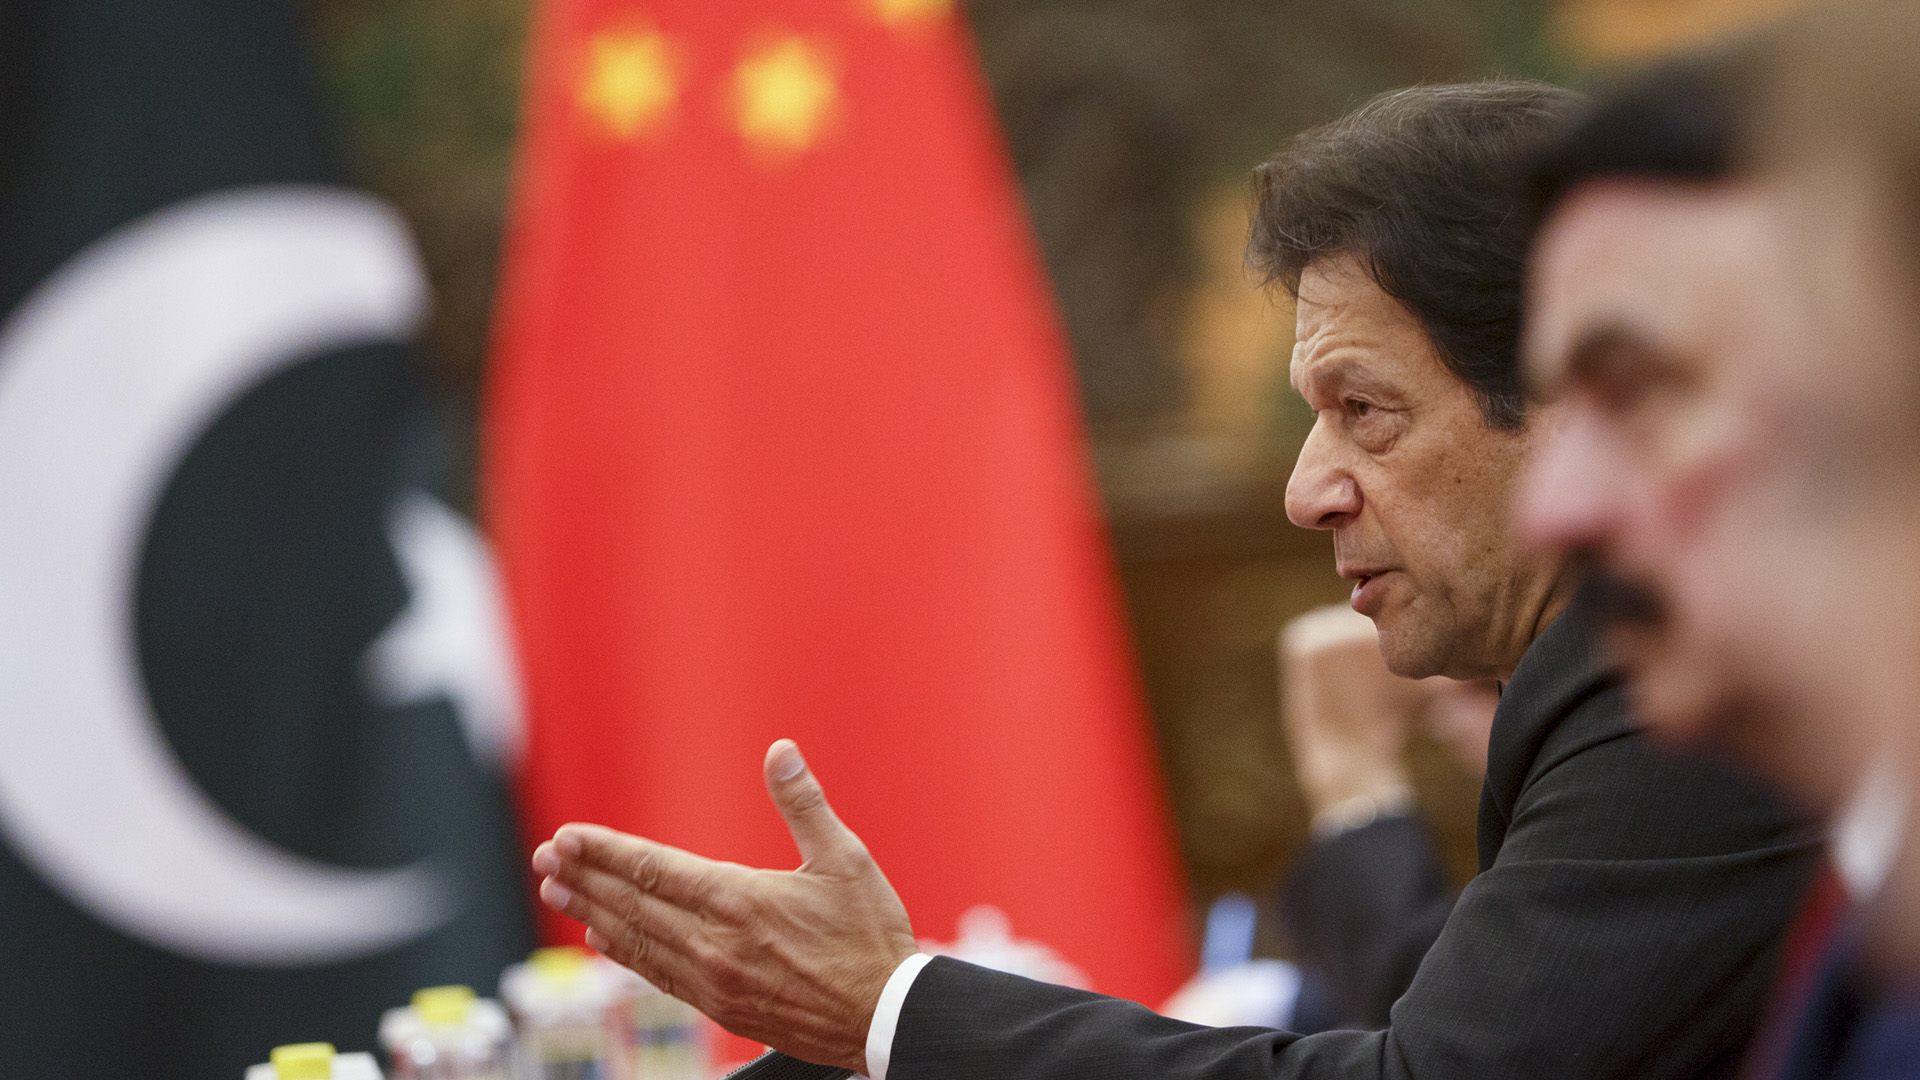 To Appease China, Pakistan Appoints New Belt & Road Chief